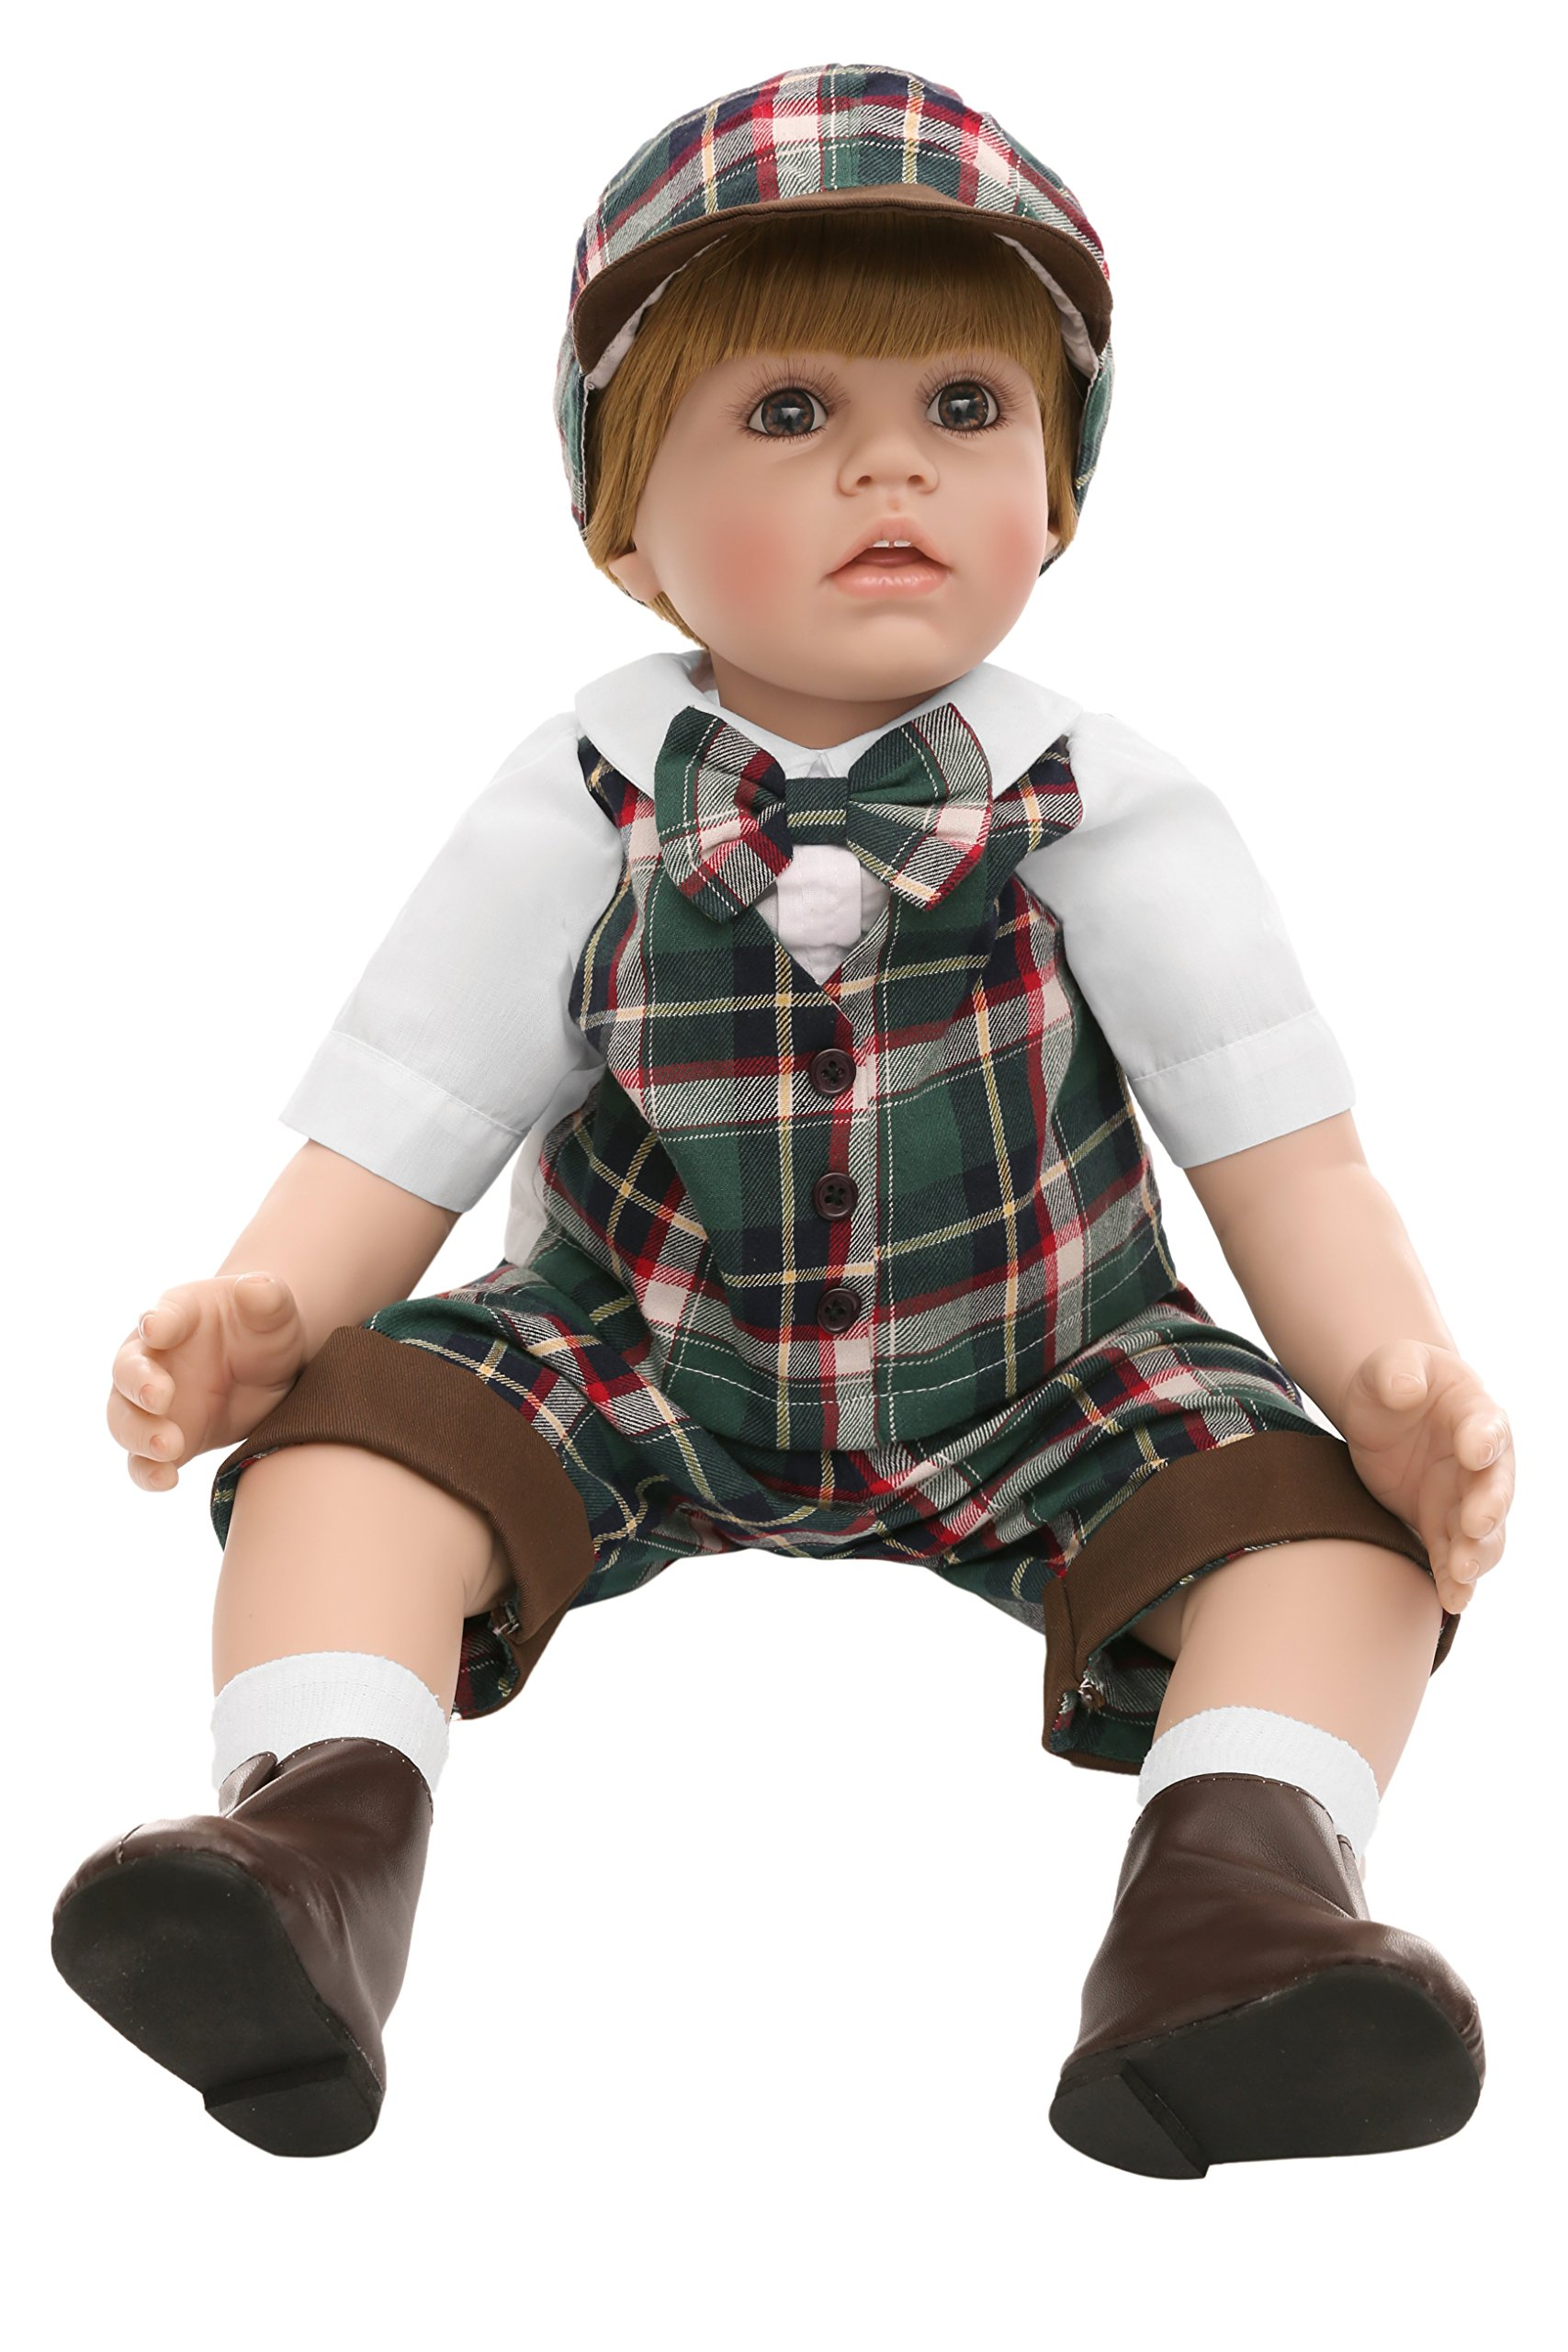 Ladora 23'' Soft Body Lifelike Adorable Doll with Moveable Arms Les for 6+ Children Dolly Toy AMC17006